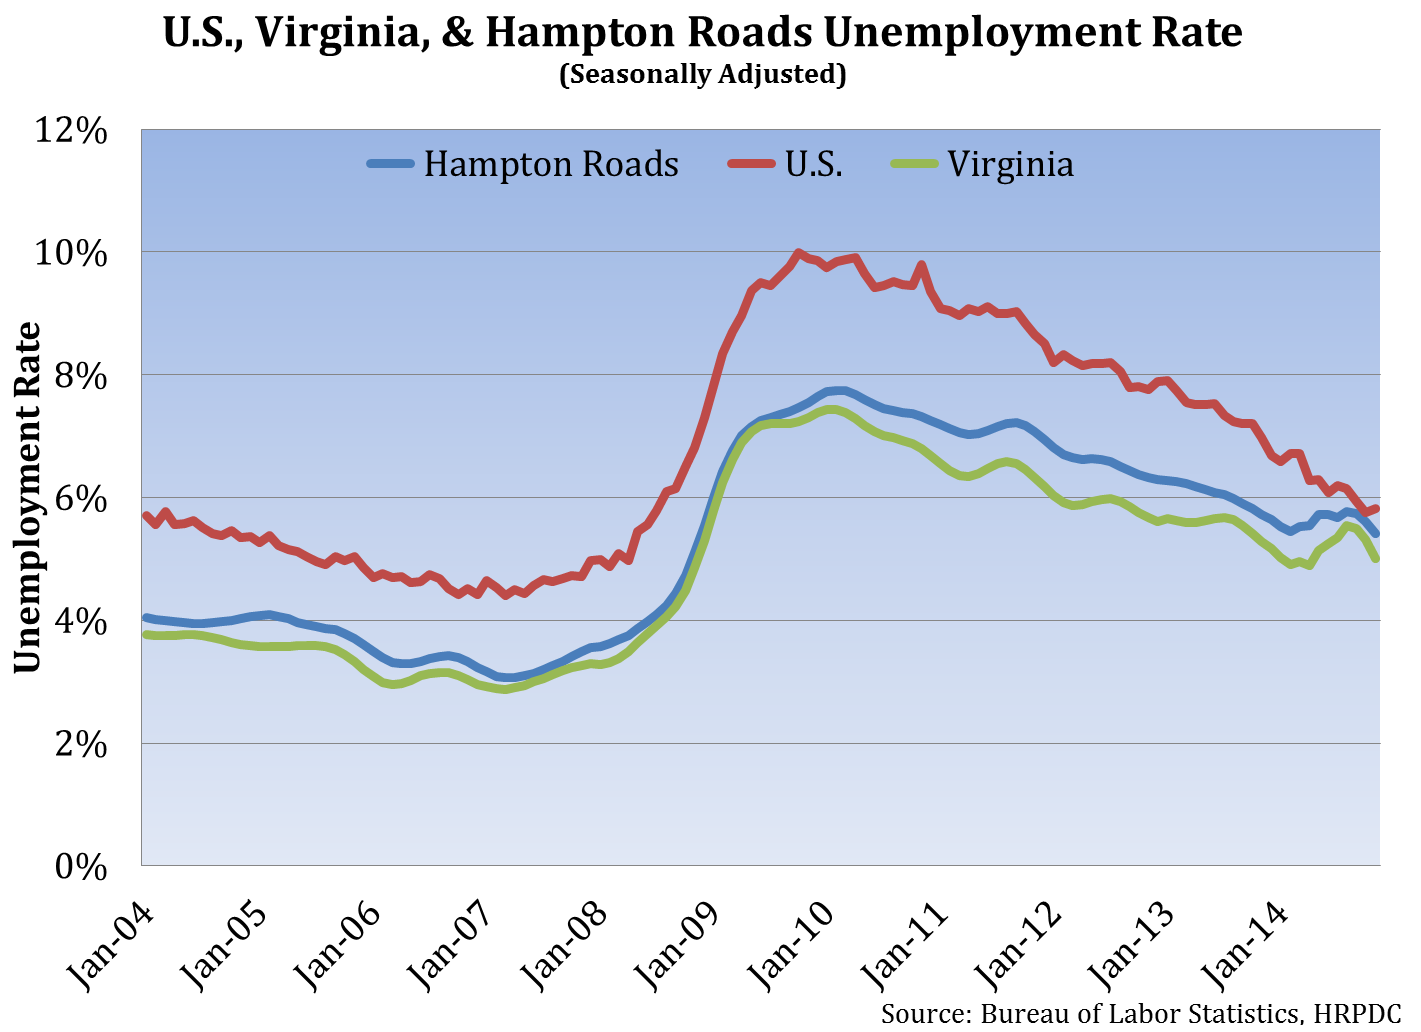 U.S., Virginia and Hampton Roads Unemployment Rate